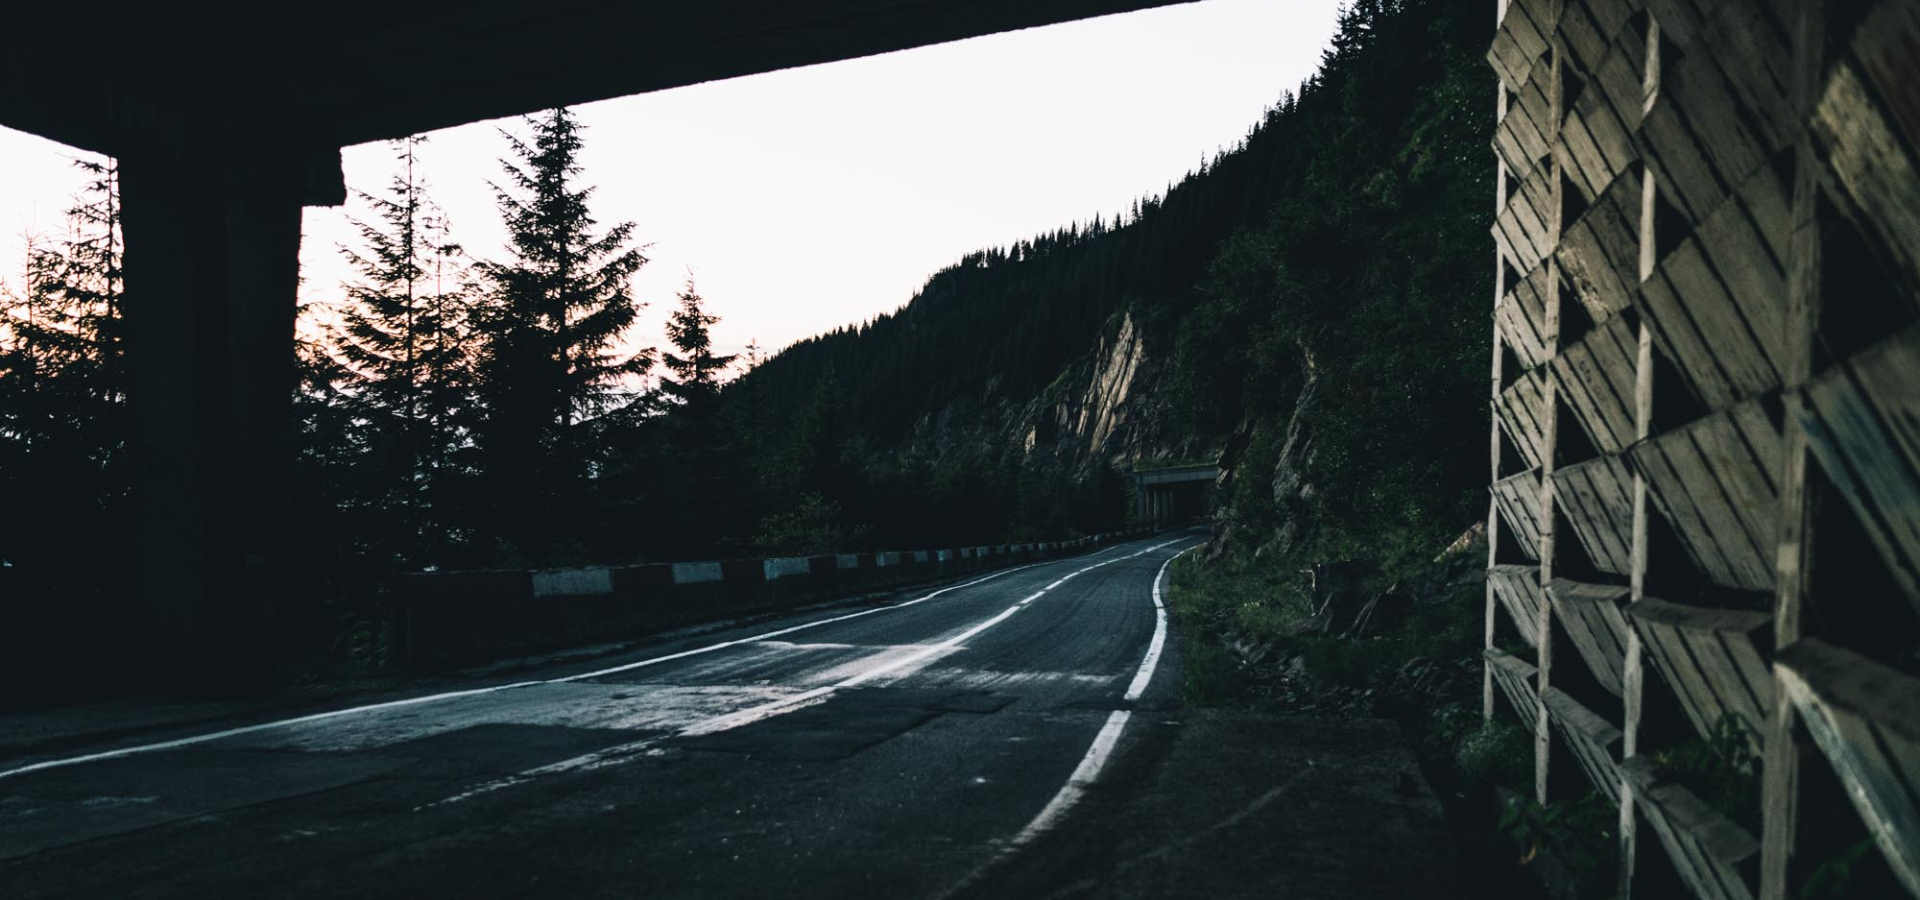 cycling through sunset under mountain road underpass